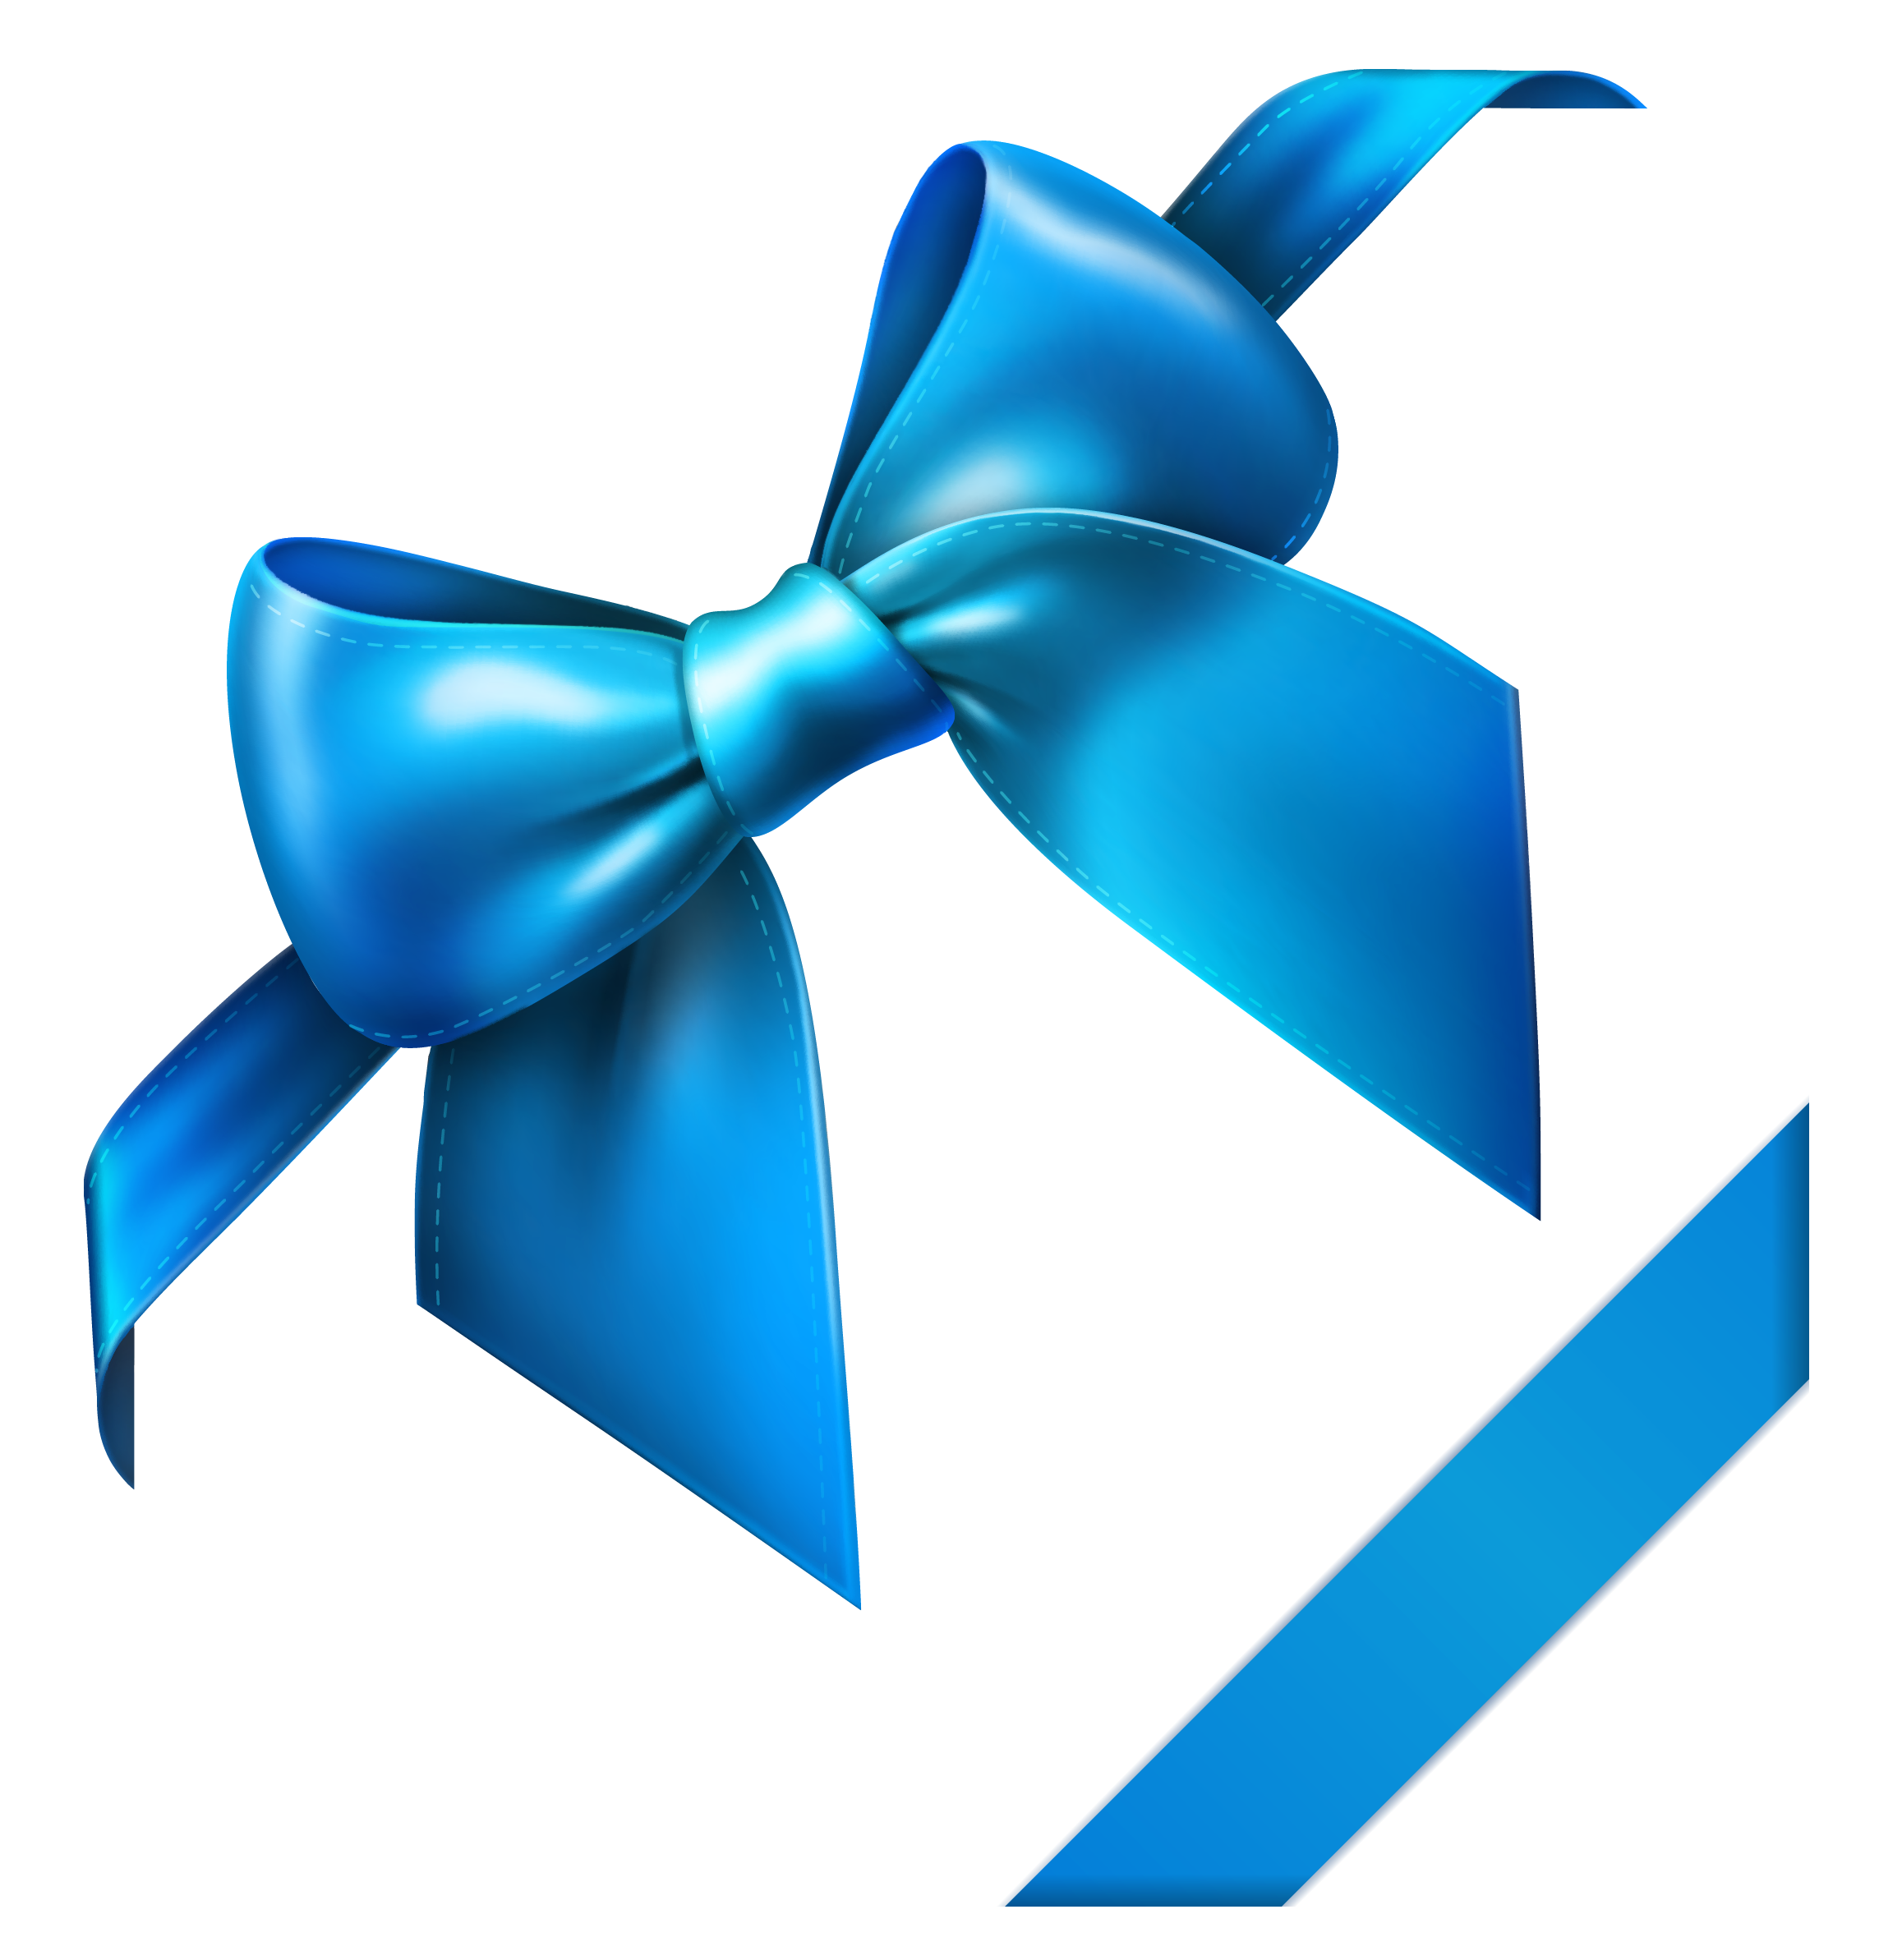 Archery clipart border. Blue bow png picture